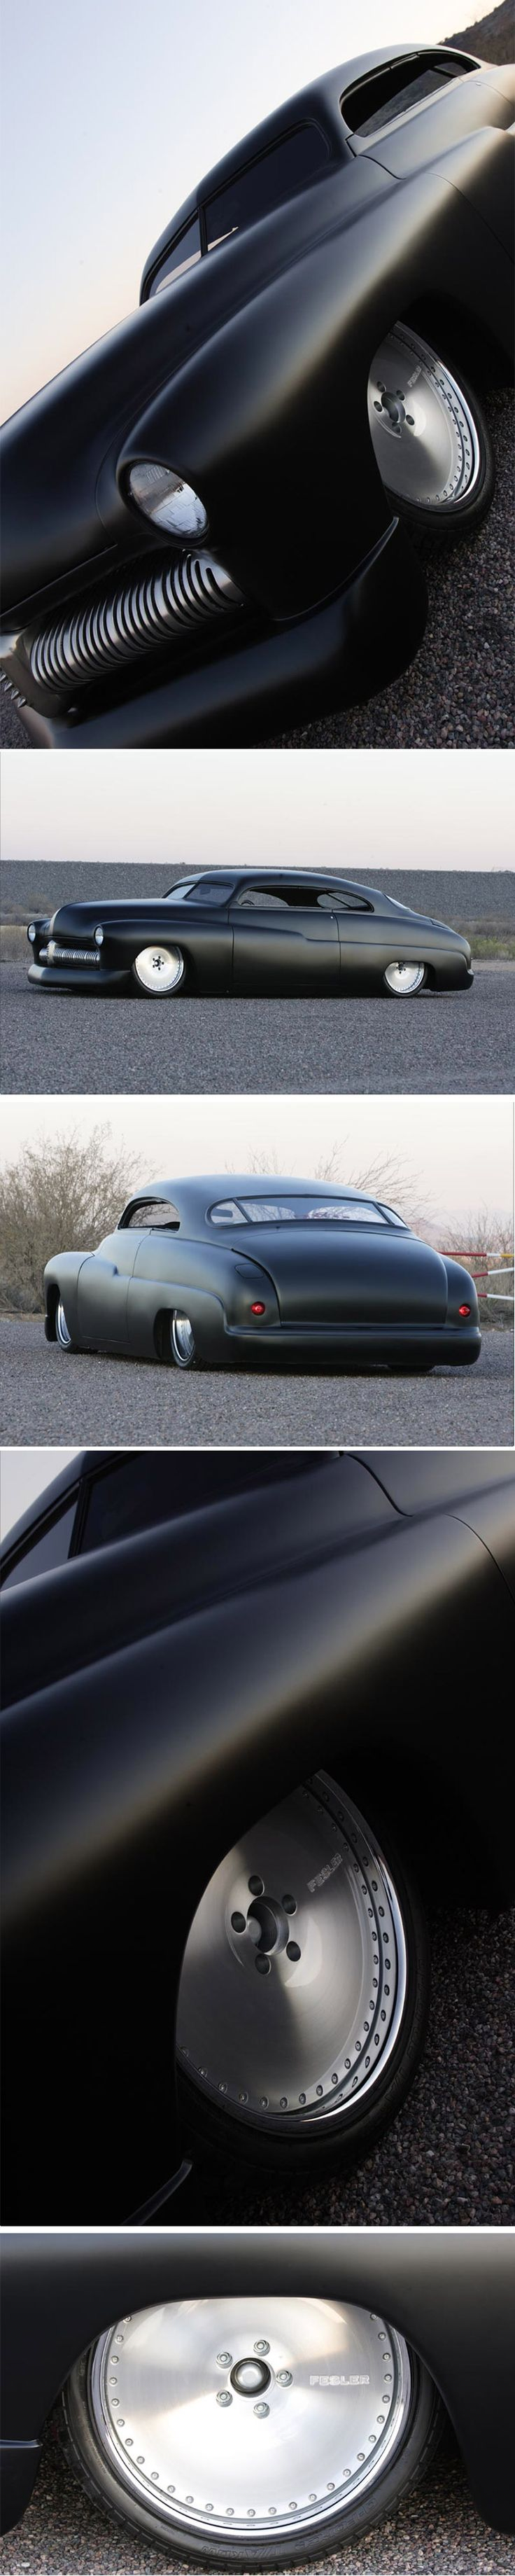 "phantom ride | 1949 Merc ""Led Sled"" 1 day a matte black hotrod"